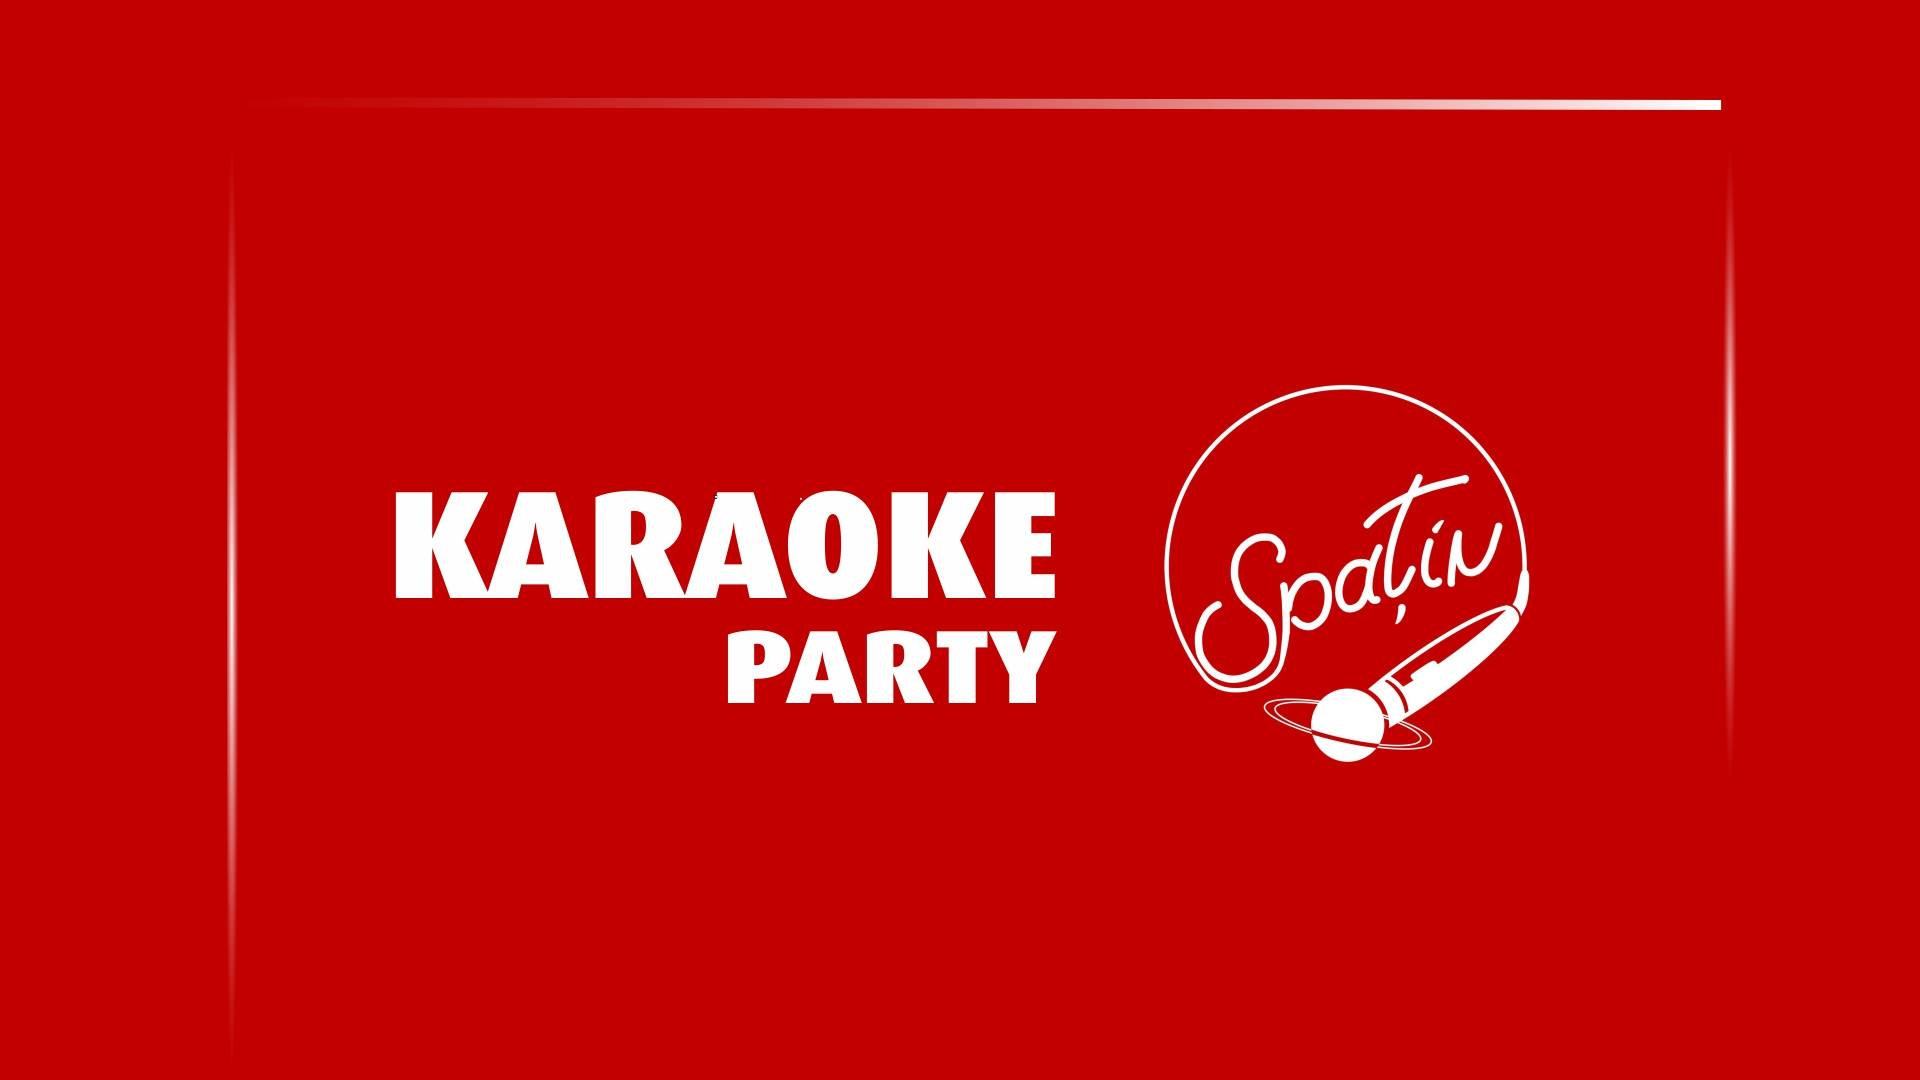 Friday Karaoke Party